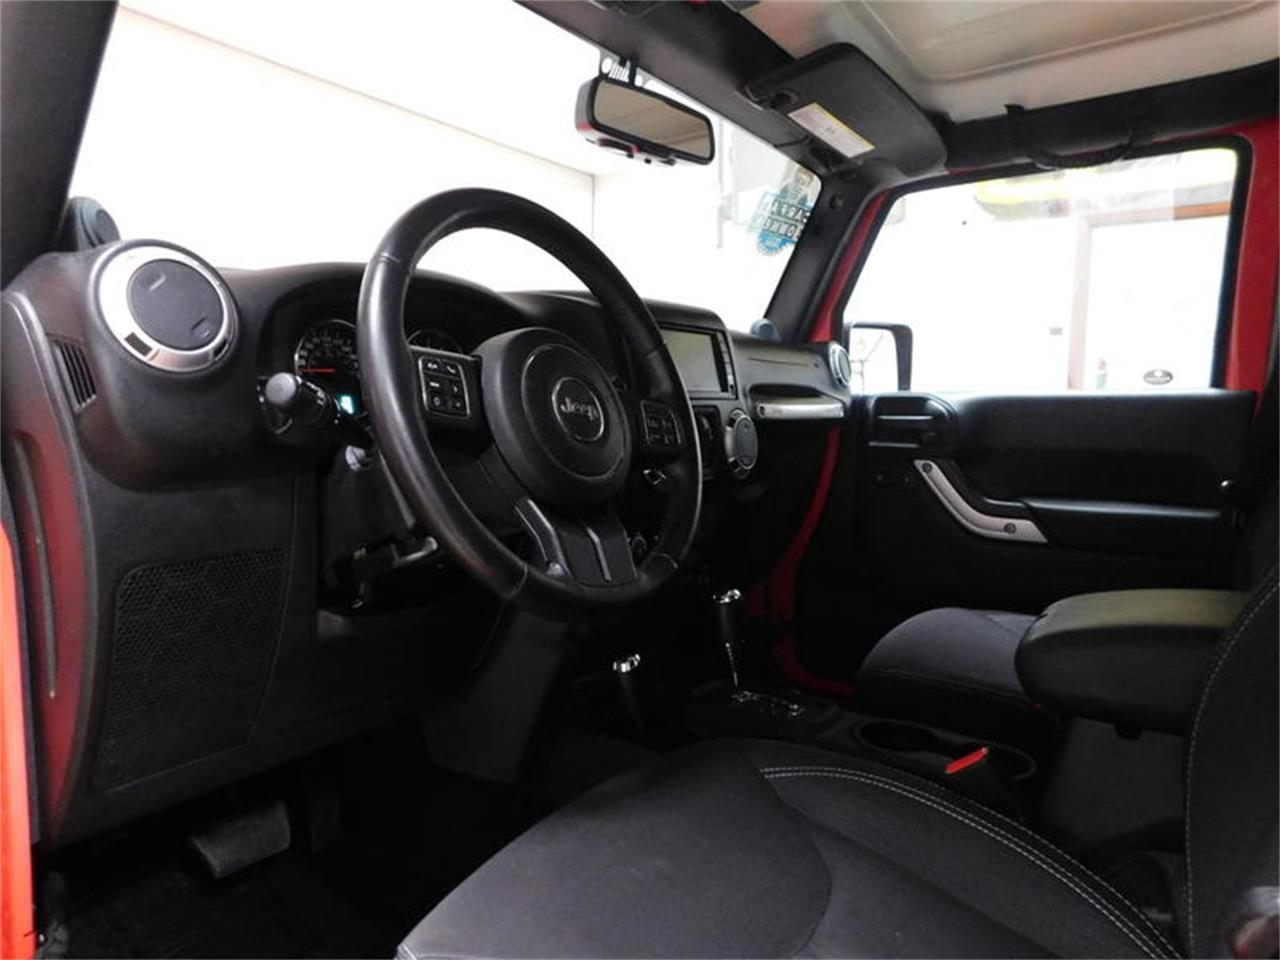 2013 Jeep Wrangler for sale in Hamburg, NY – photo 24